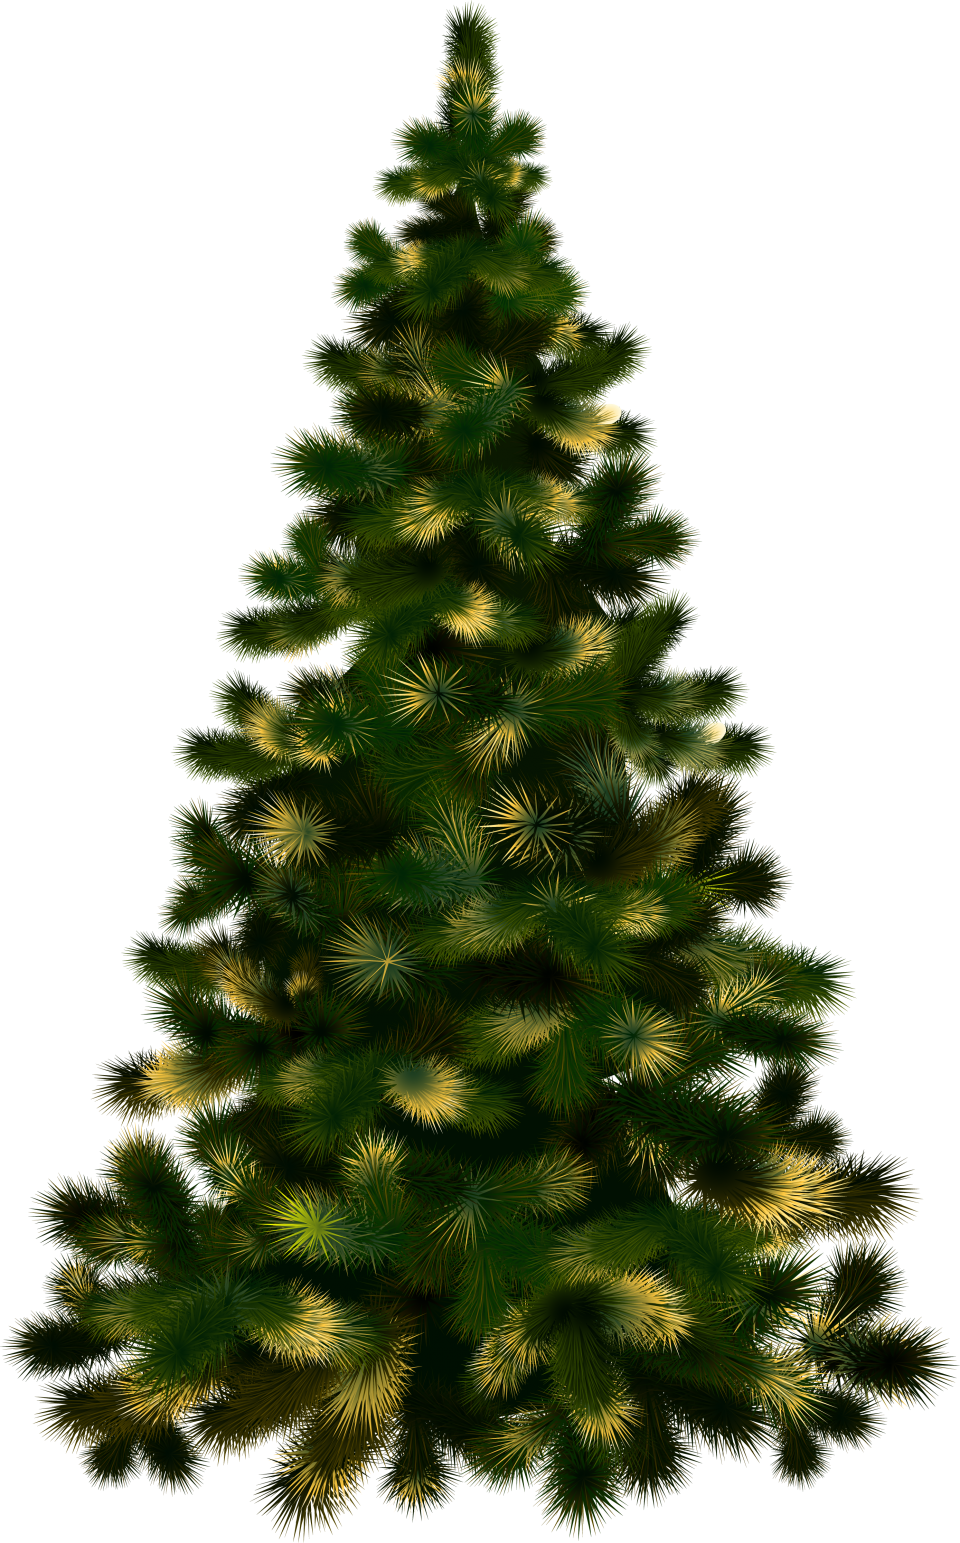 Christmas Tree without Lights PNG Image - PurePNG   Free ...